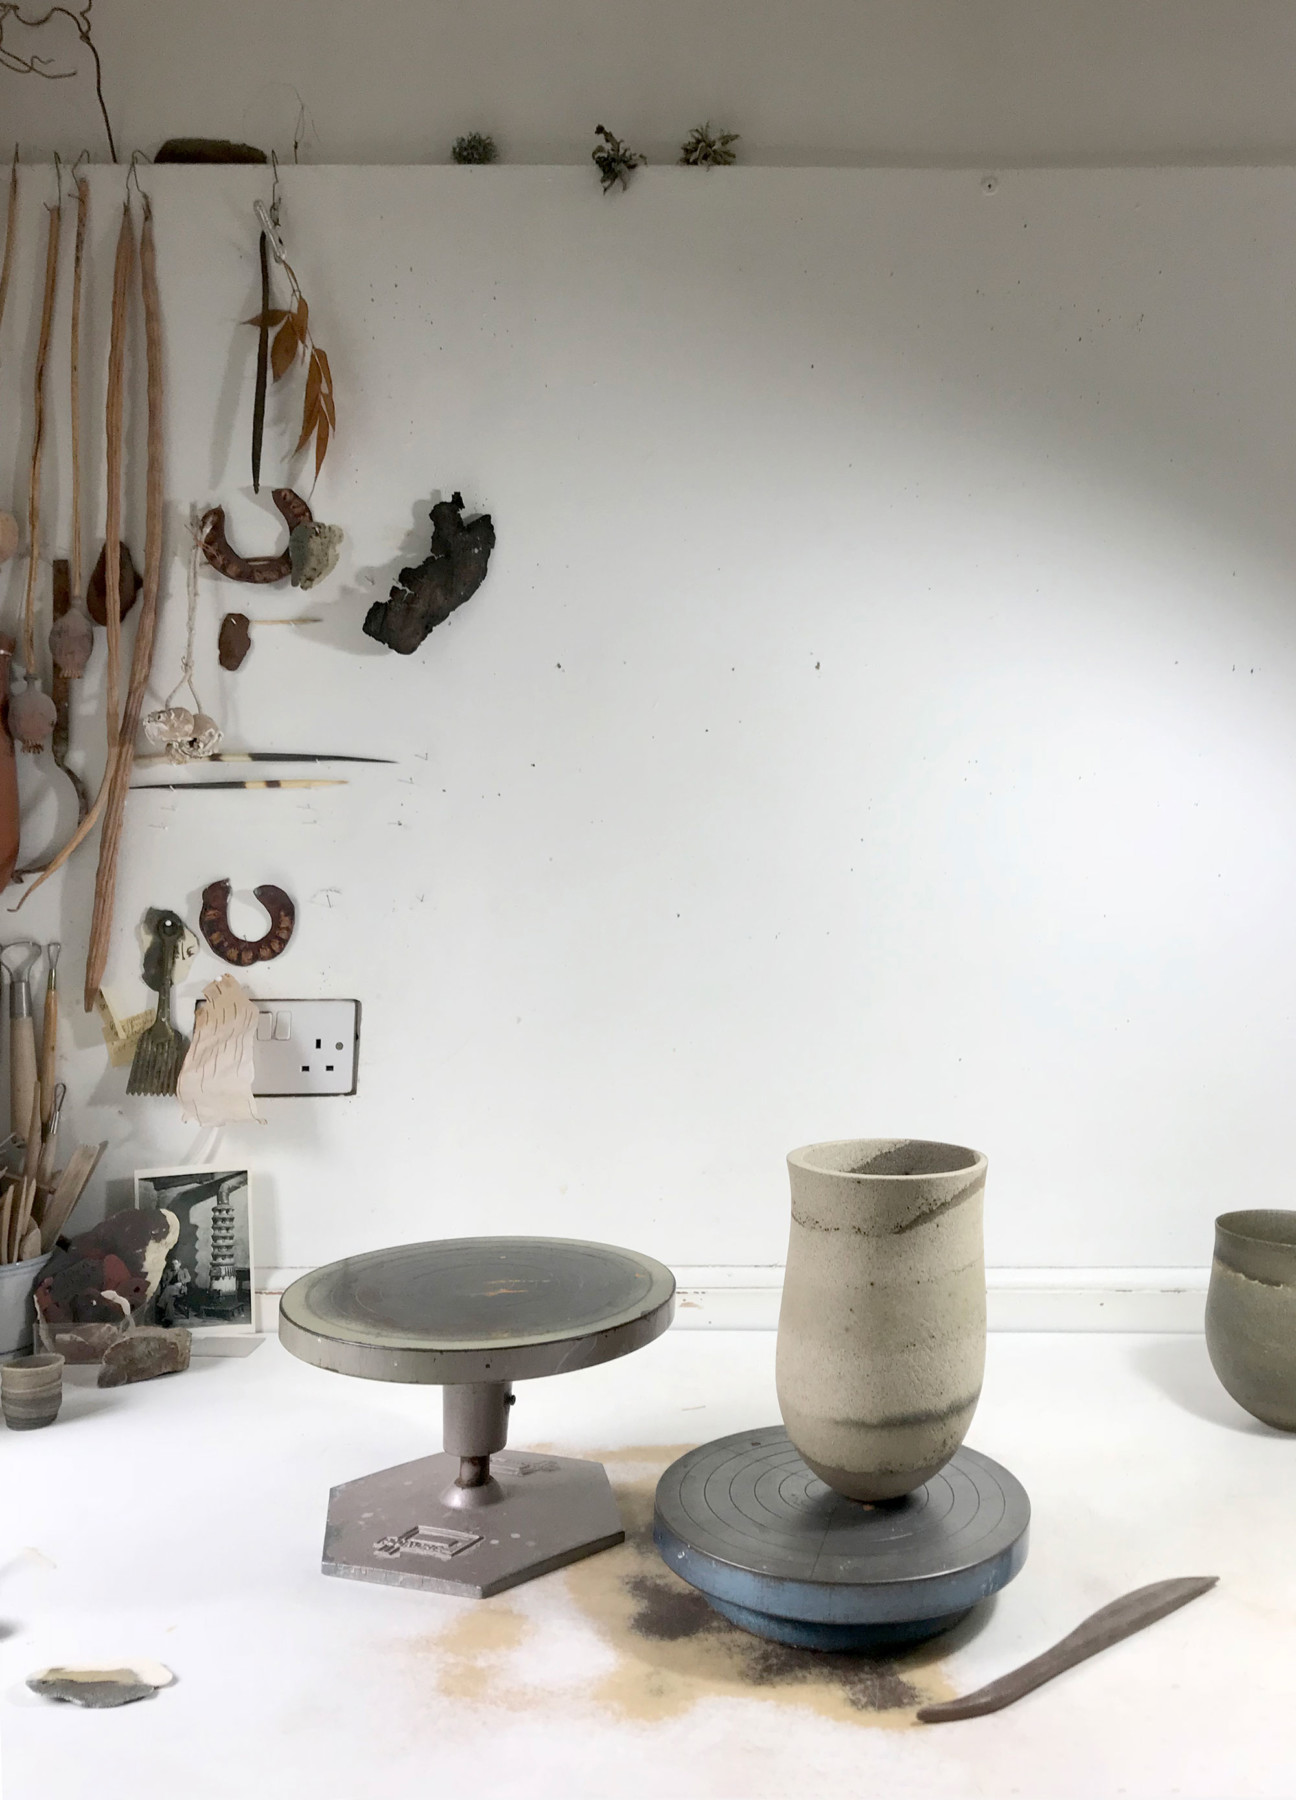 kettles-yard-exhibition-design-jamie-fobert-architects-studio-visit-work-bench-2